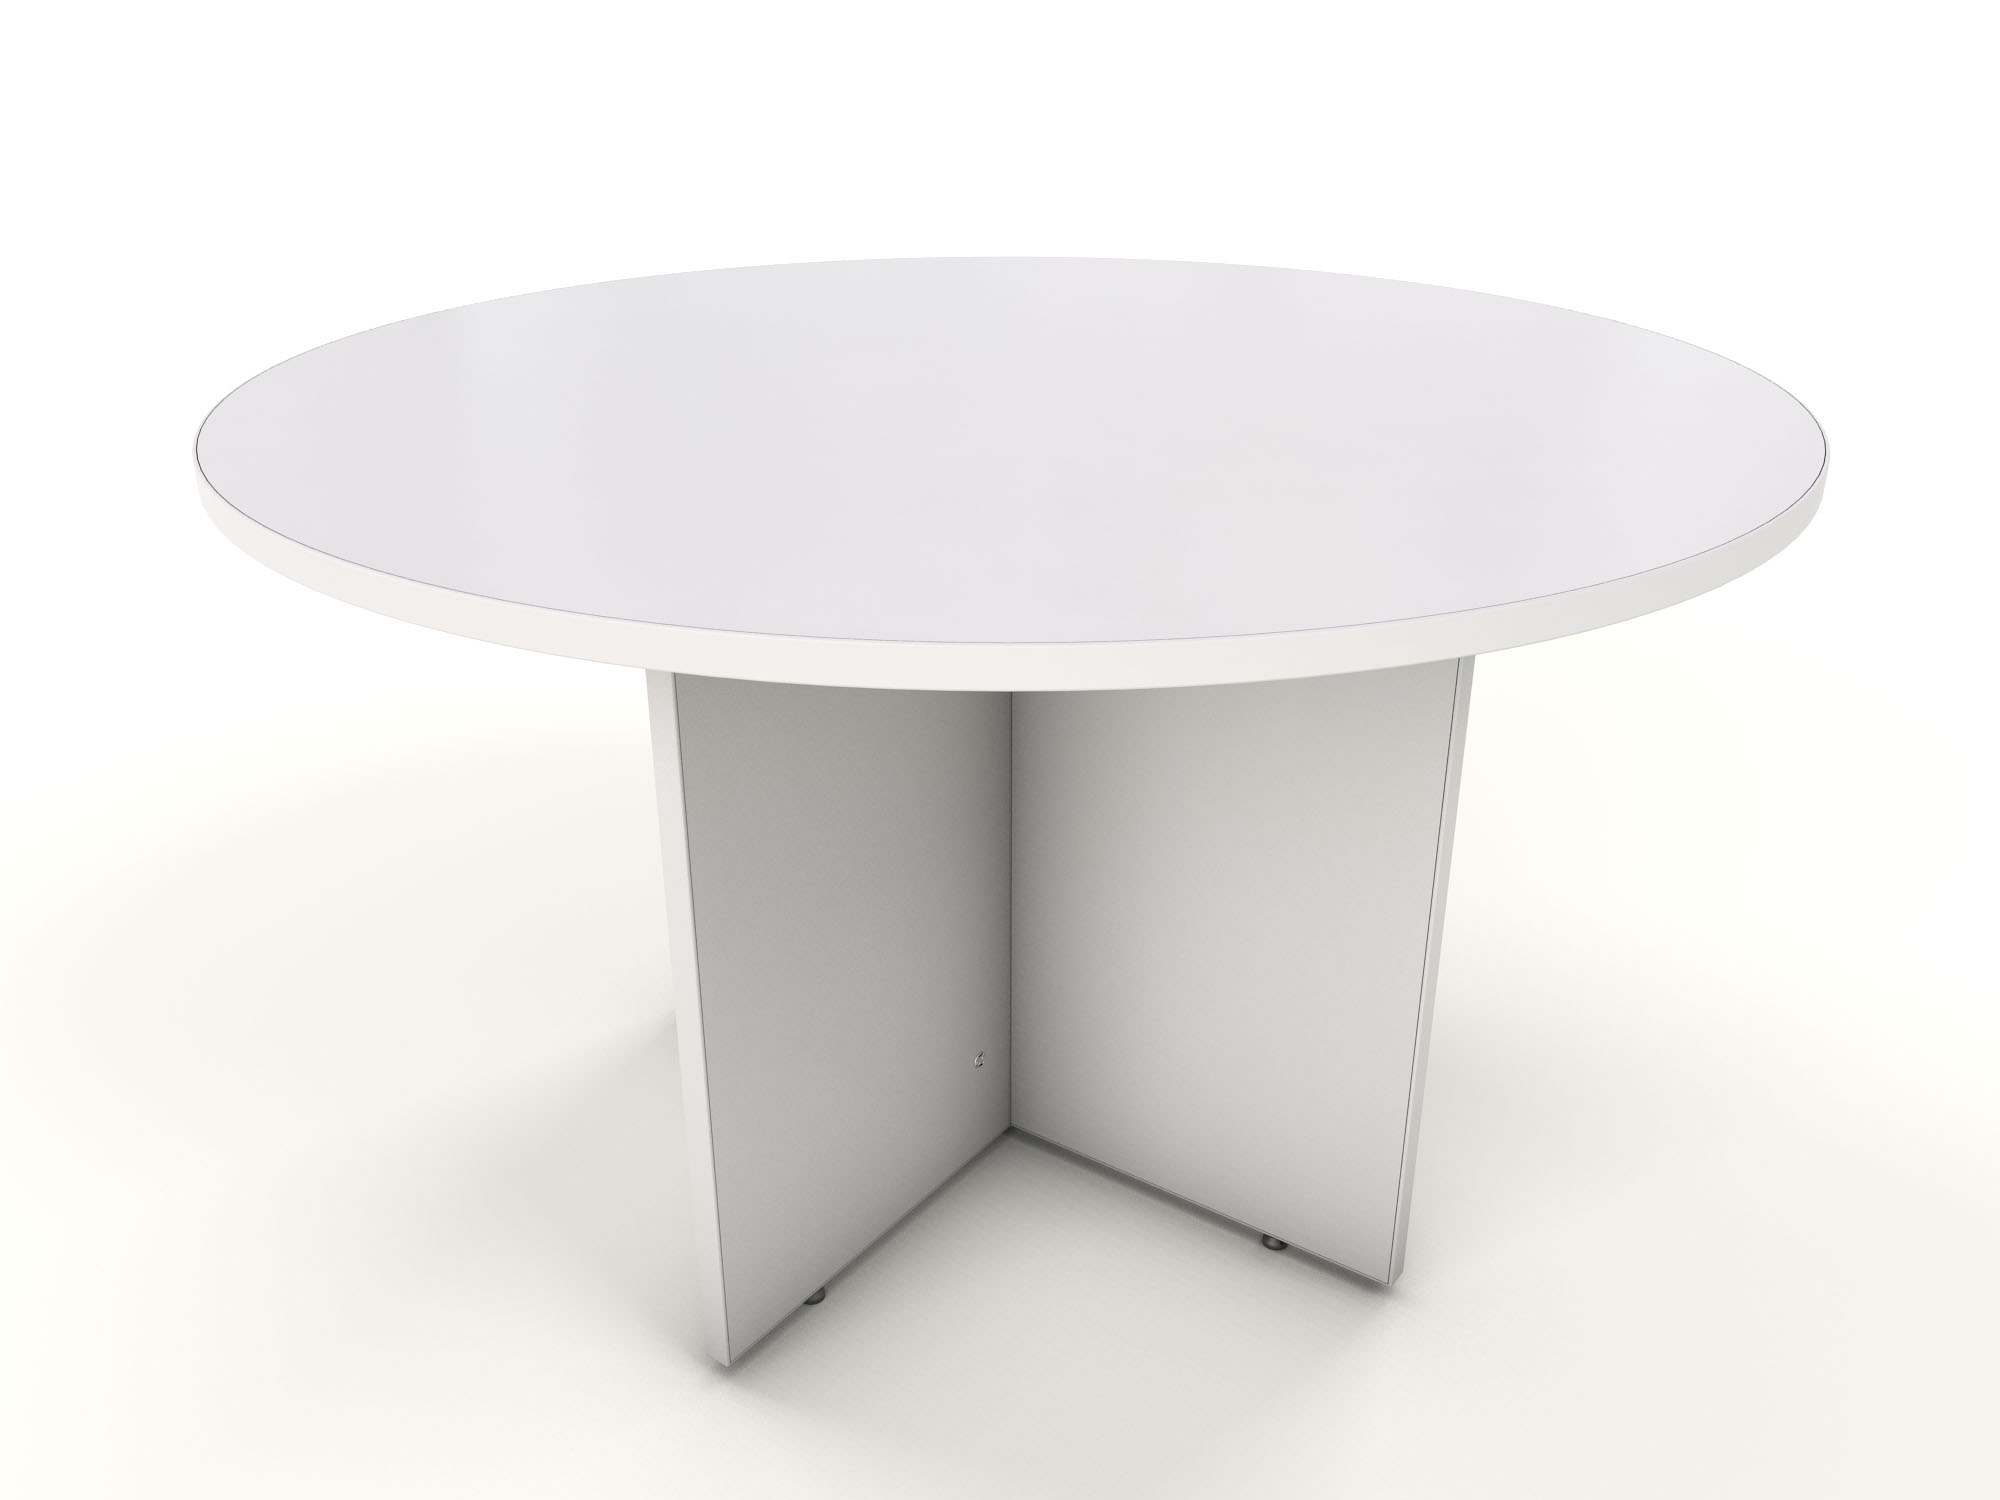 Linz International » Product Categories » Meeting Tables Pertaining To Widely Used Icarus Round Bar Tables (View 10 of 25)